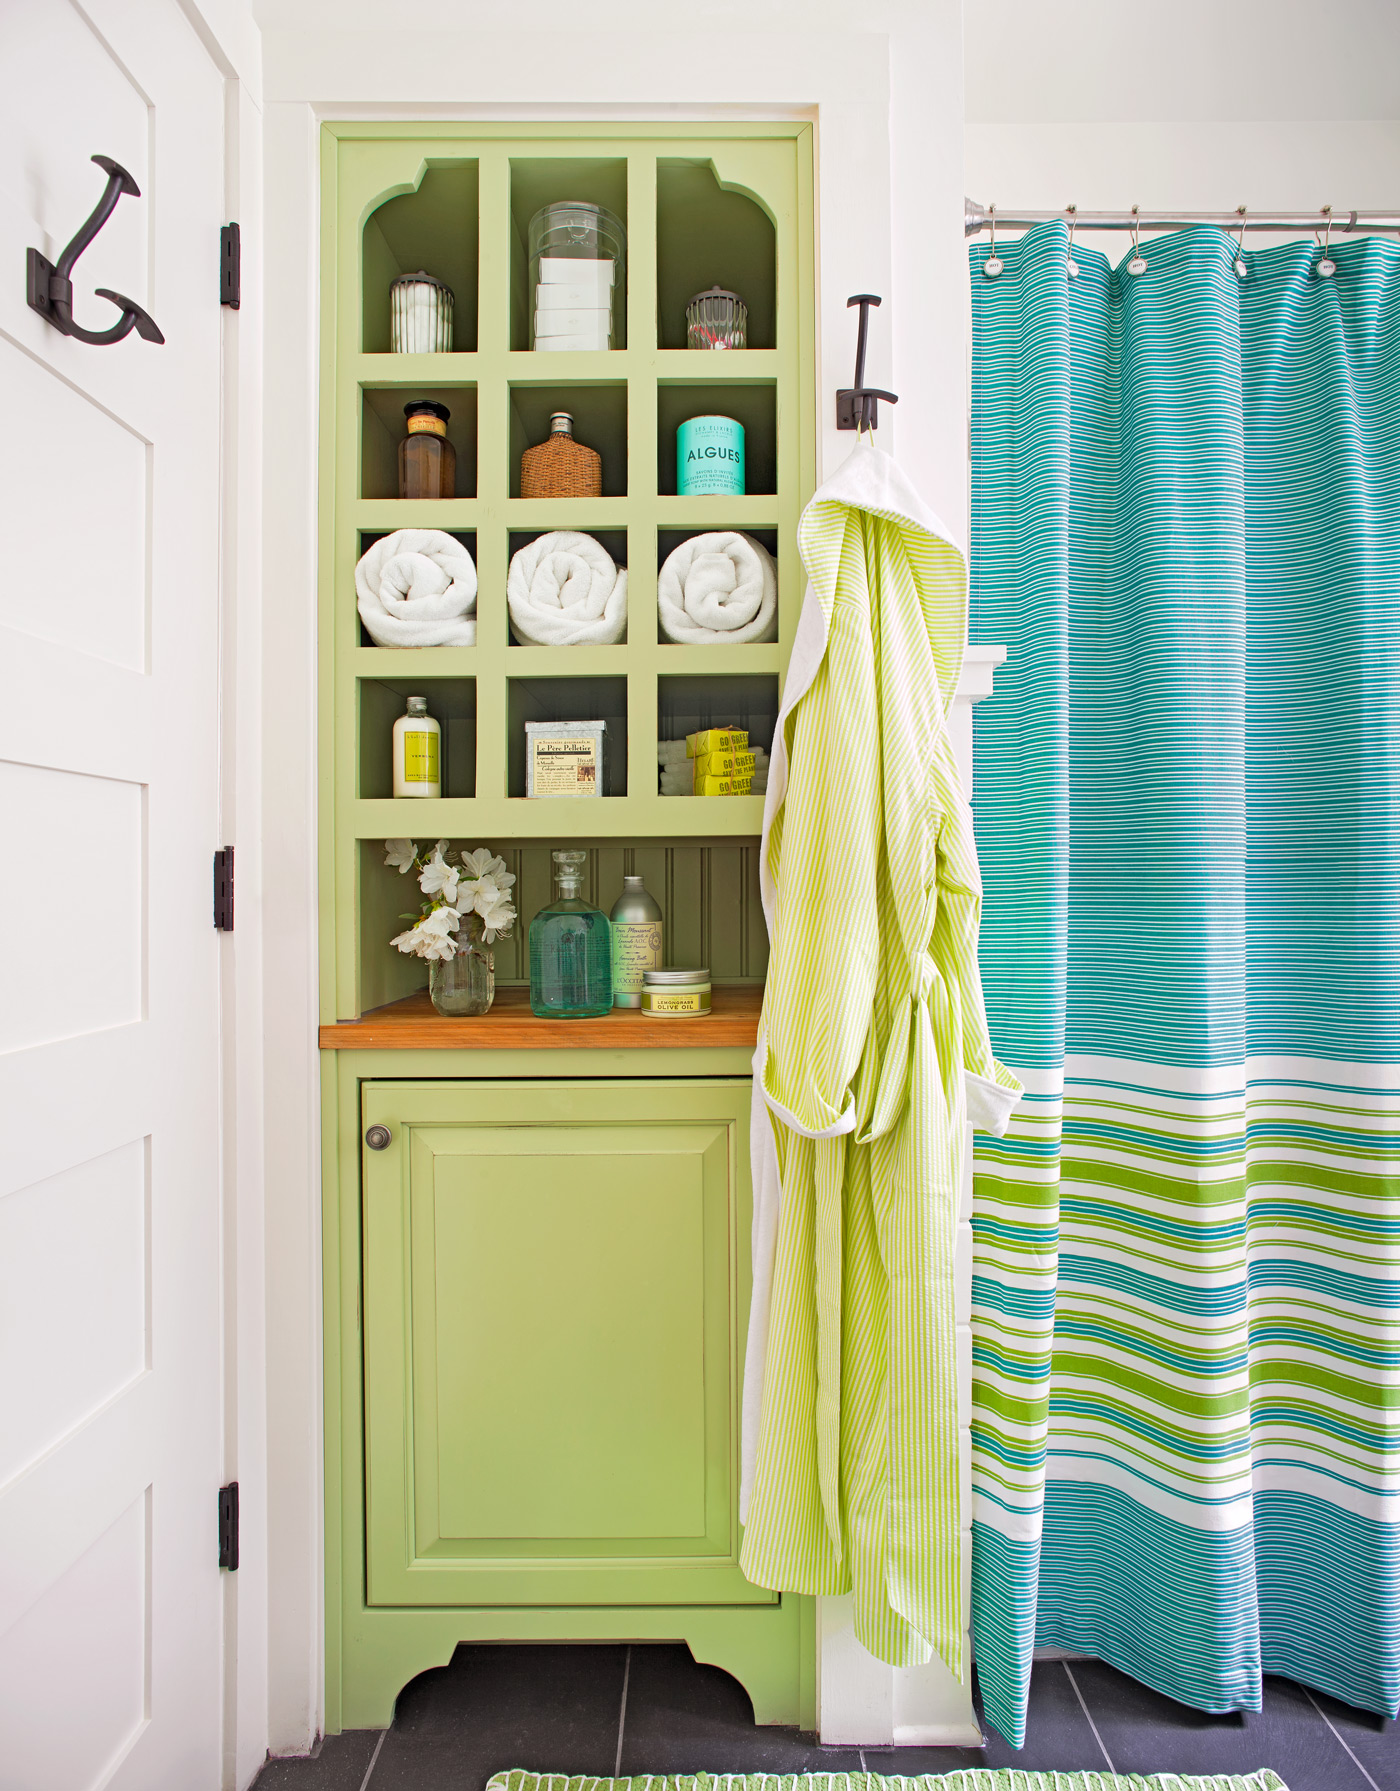 built-in bathroom cabinet with cubbies holding rolled towels